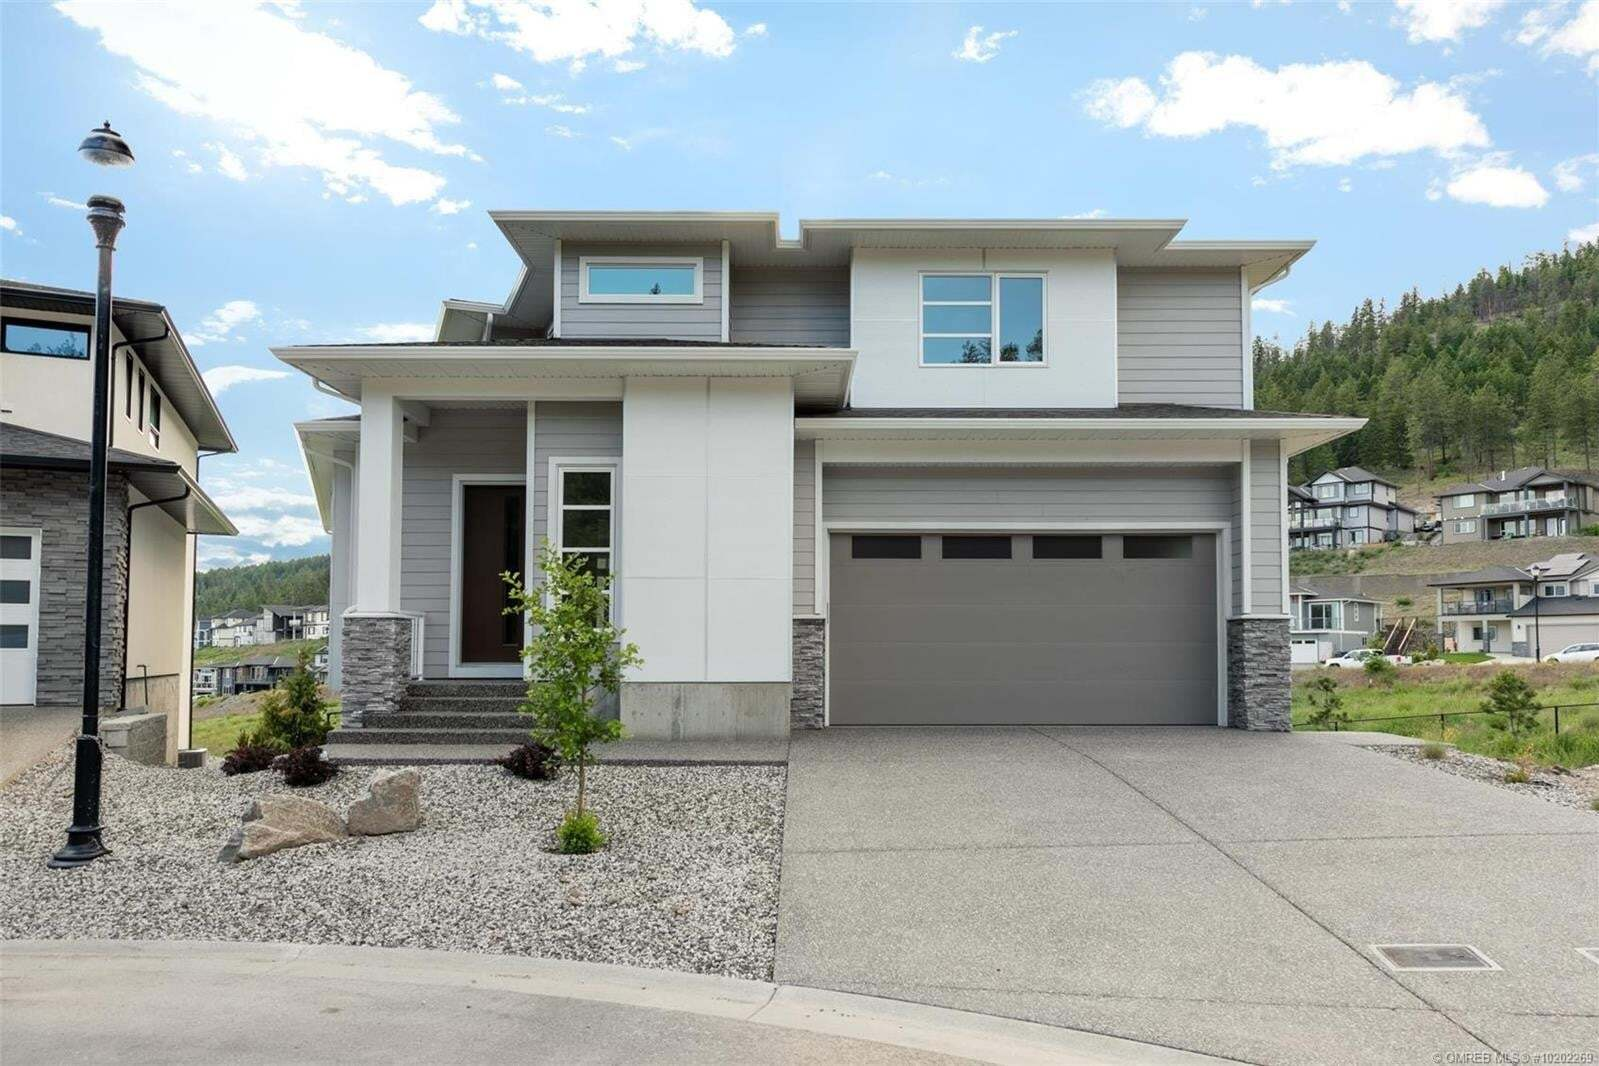 House for sale at 2578 Crown Crest Pl West Kelowna British Columbia - MLS: 10202269